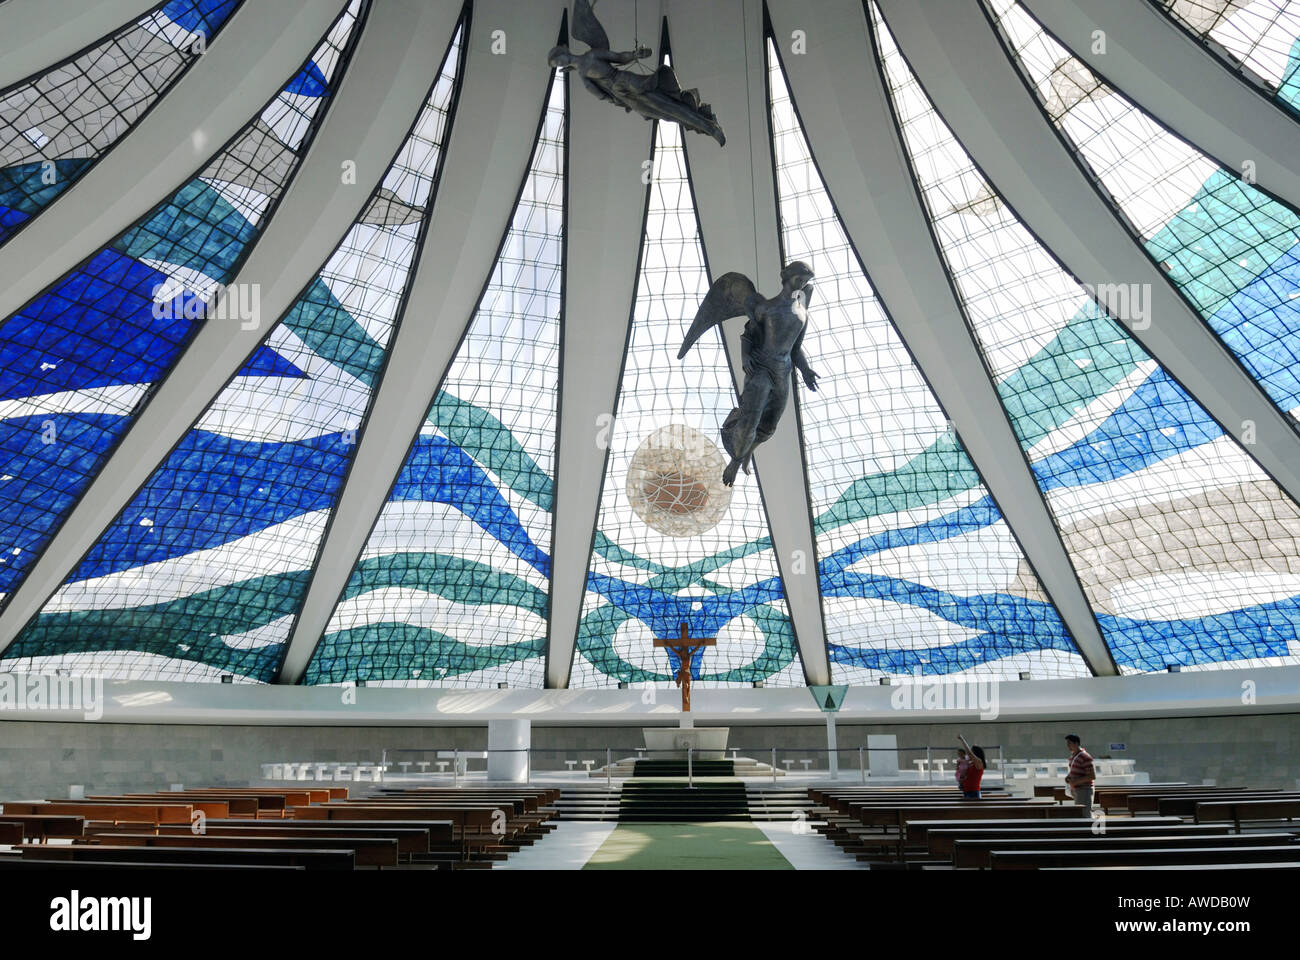 "Inside the cathedral ""Nossa senhora da Aparecida"", Brasilia, Brazil. Architect: Oscar Niemeyer Stock Photo"